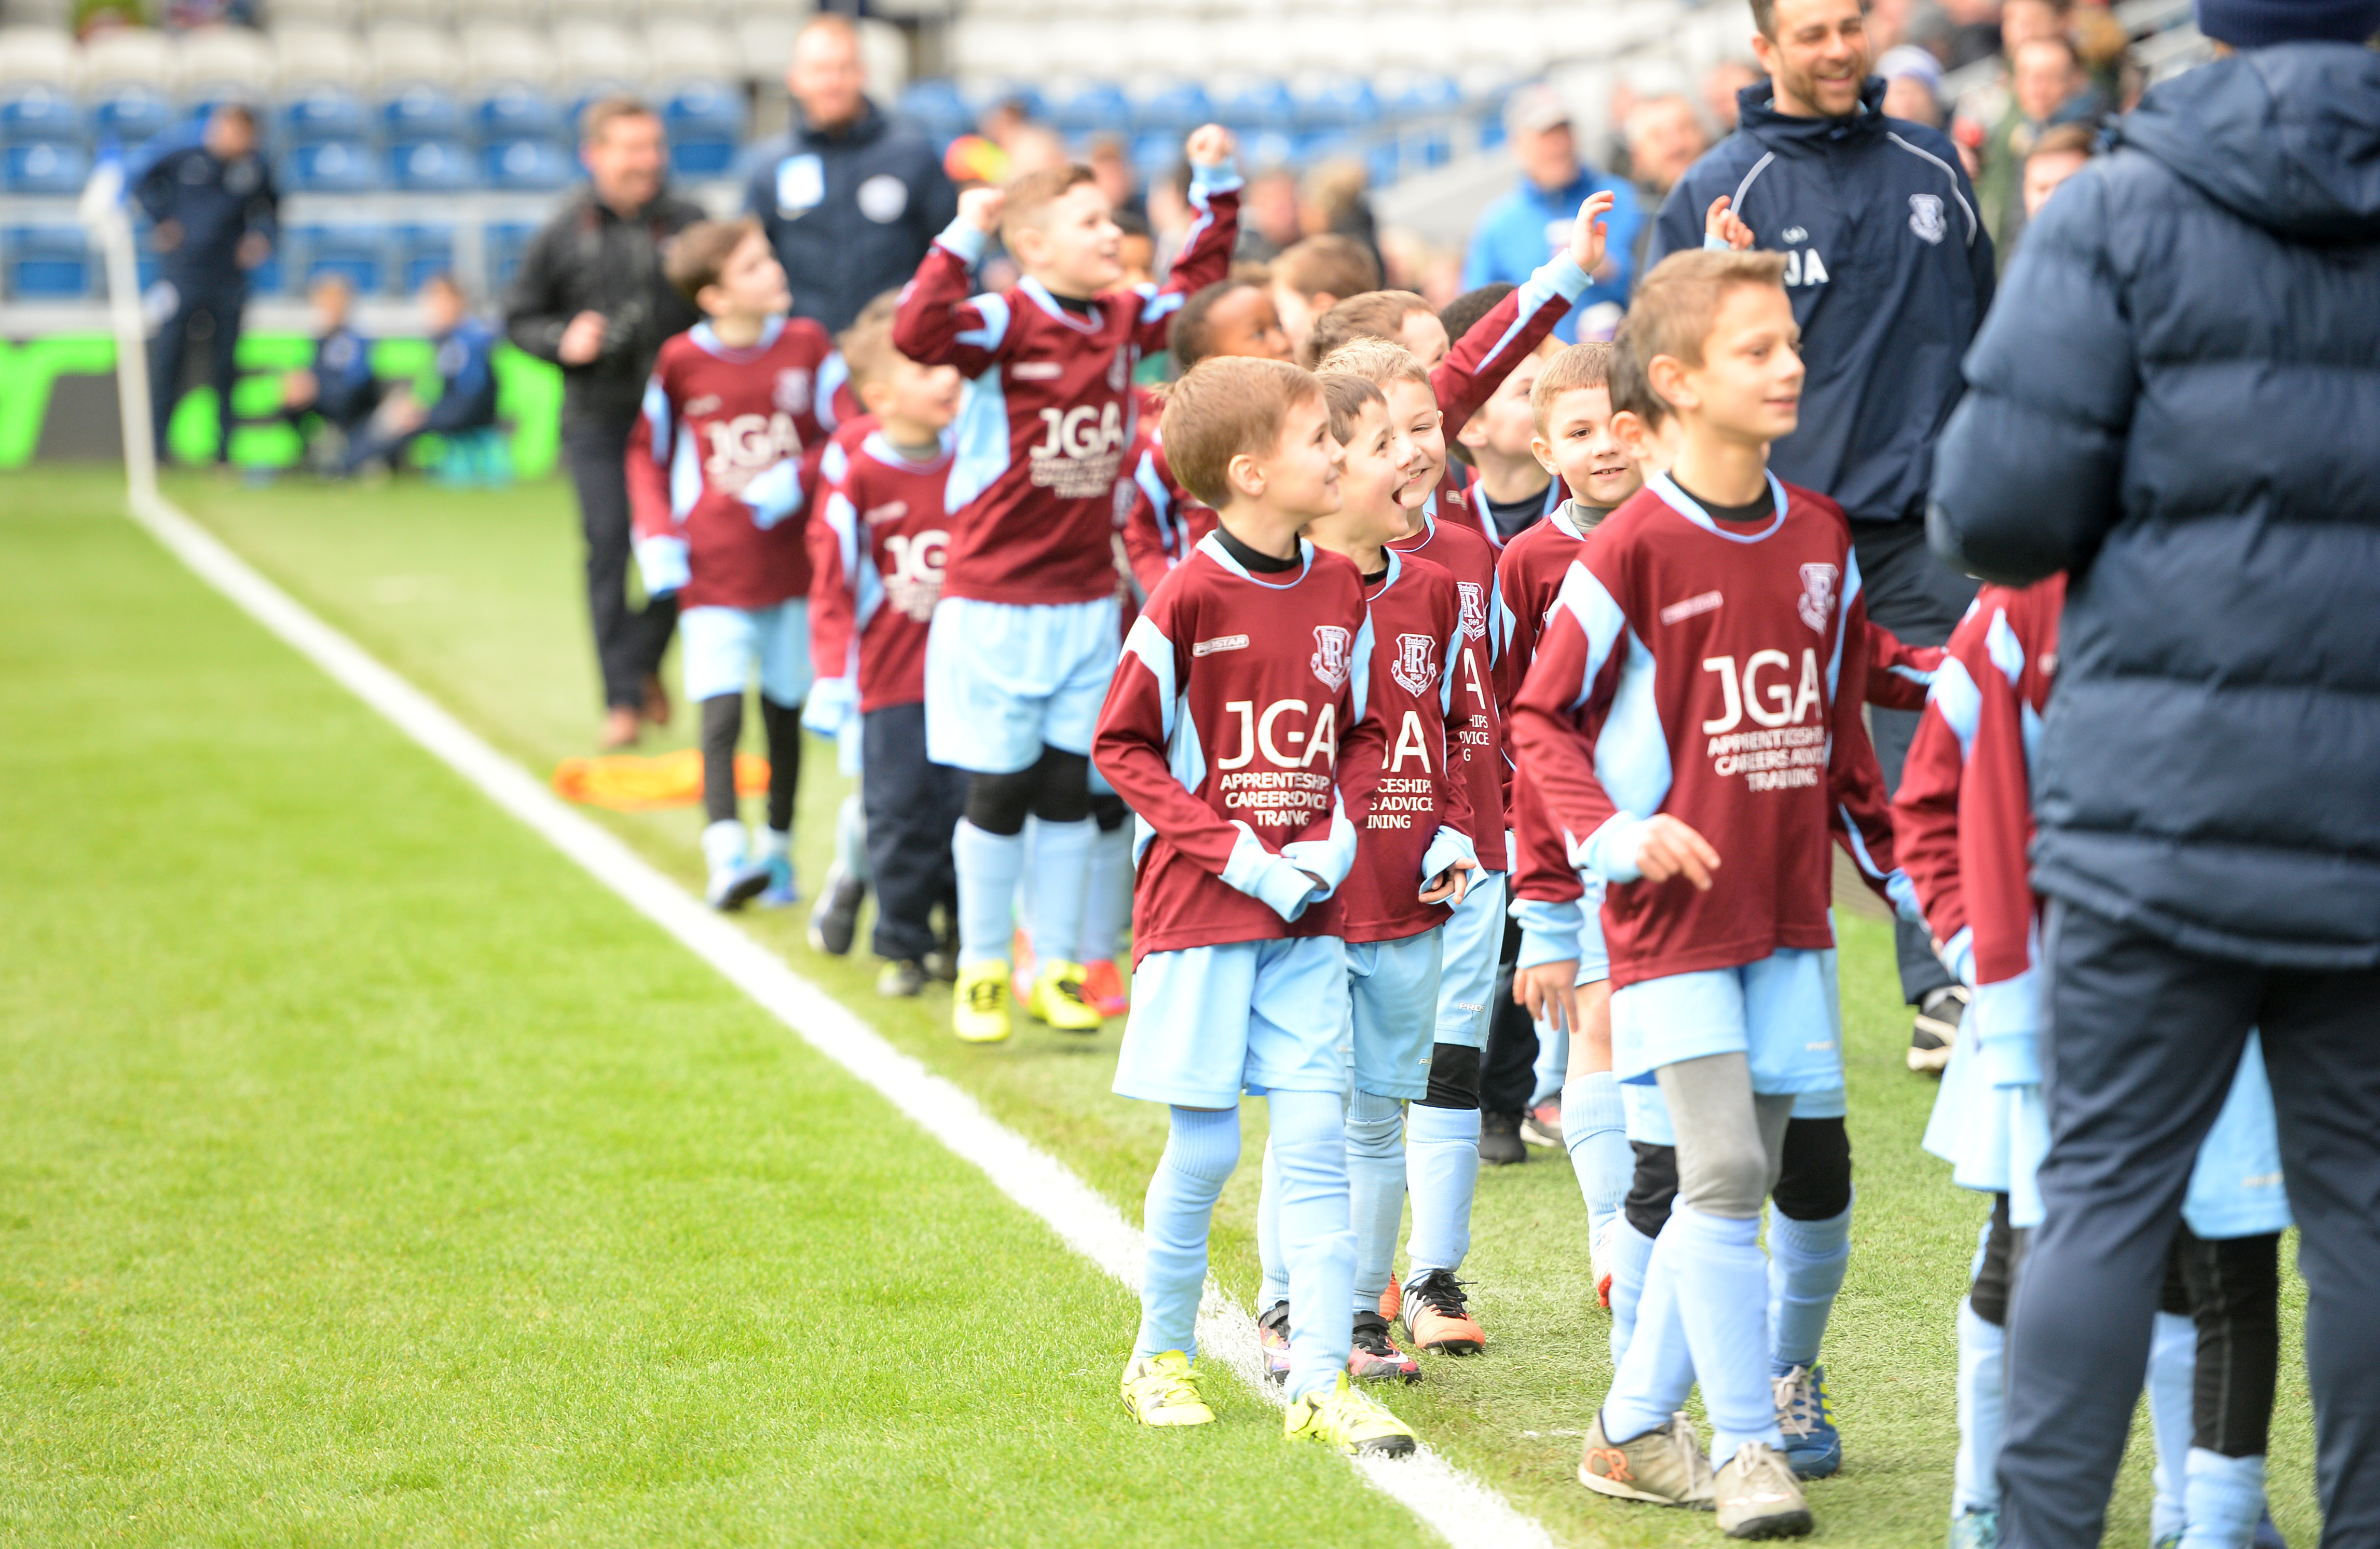 Our Under 7s and 8s were the Guard of Honour at QPR